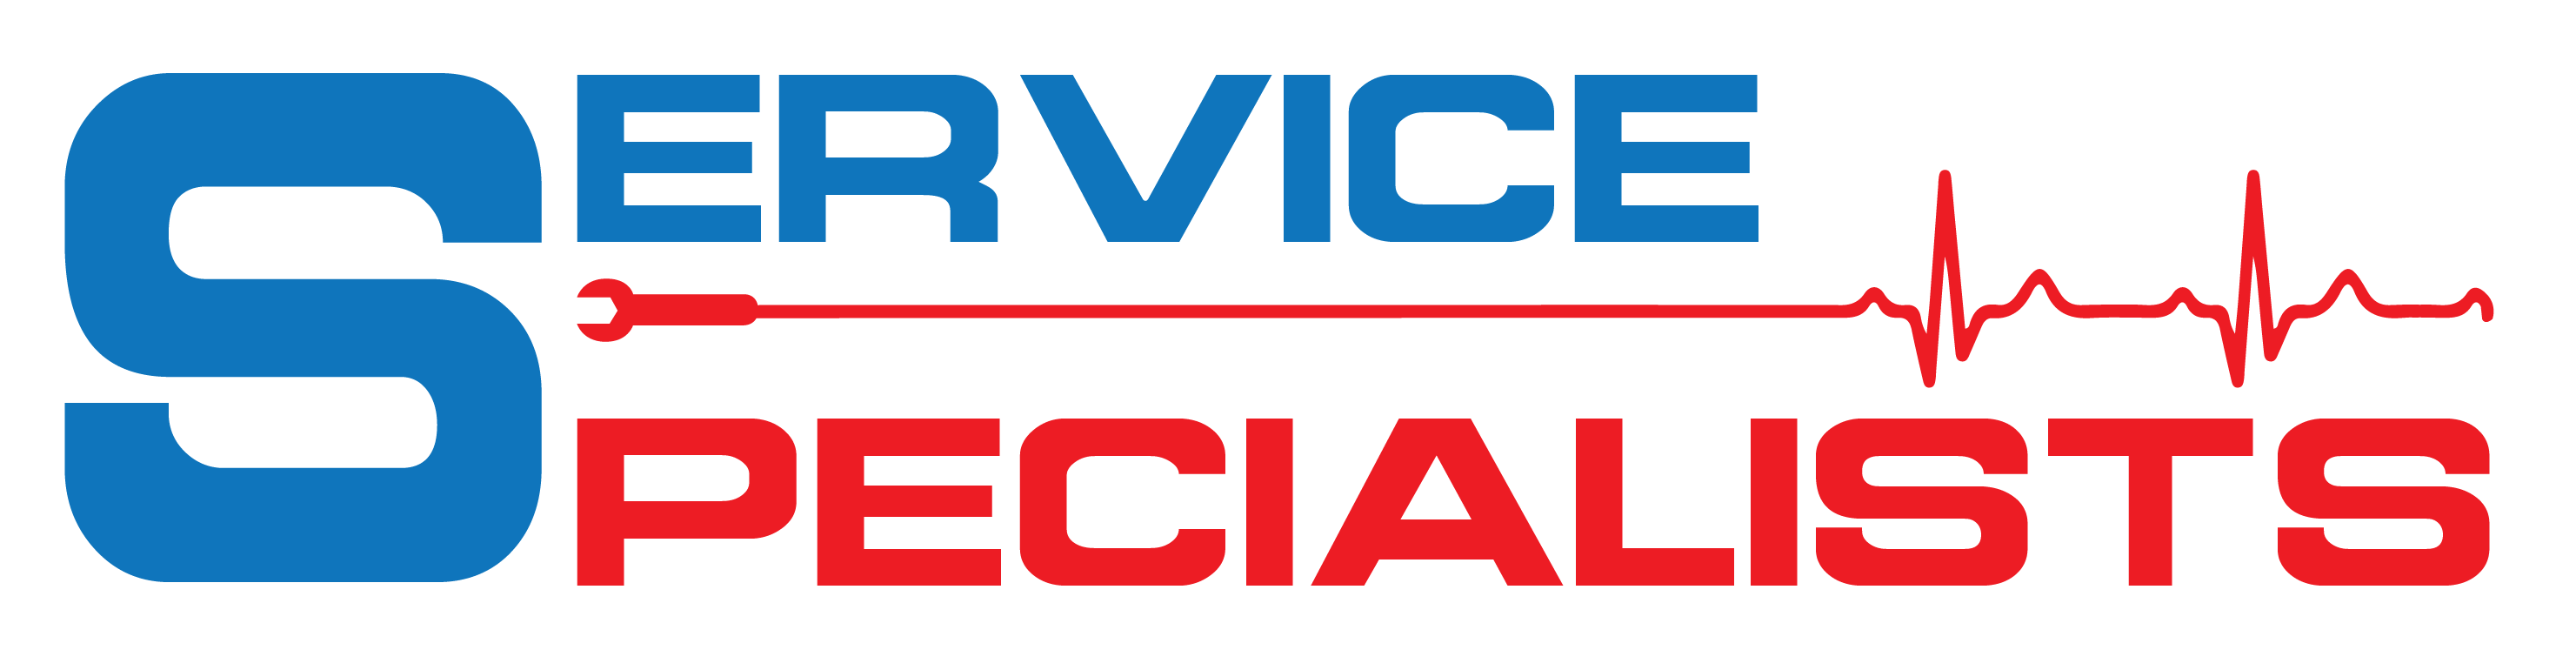 Service Specialist